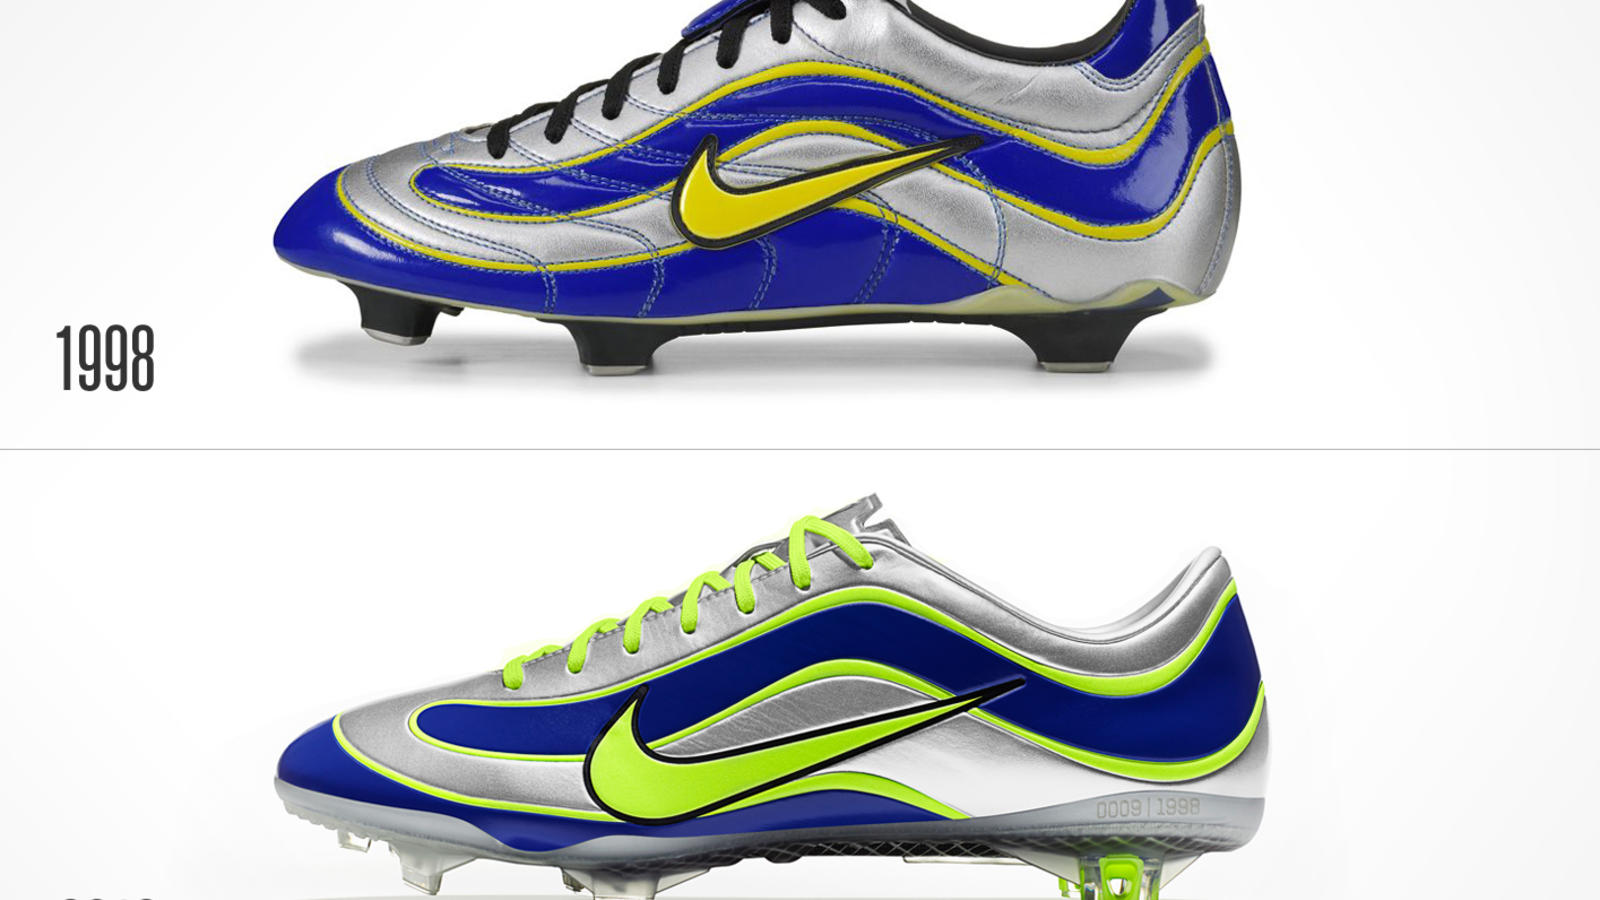 6b92e6560c95 coupon code for nike mercurial vapor 2013 35041 b6a67; italy nike  celebrates 15 years of mercurial with recreated 98 el fenómeno boot eca41  ad610